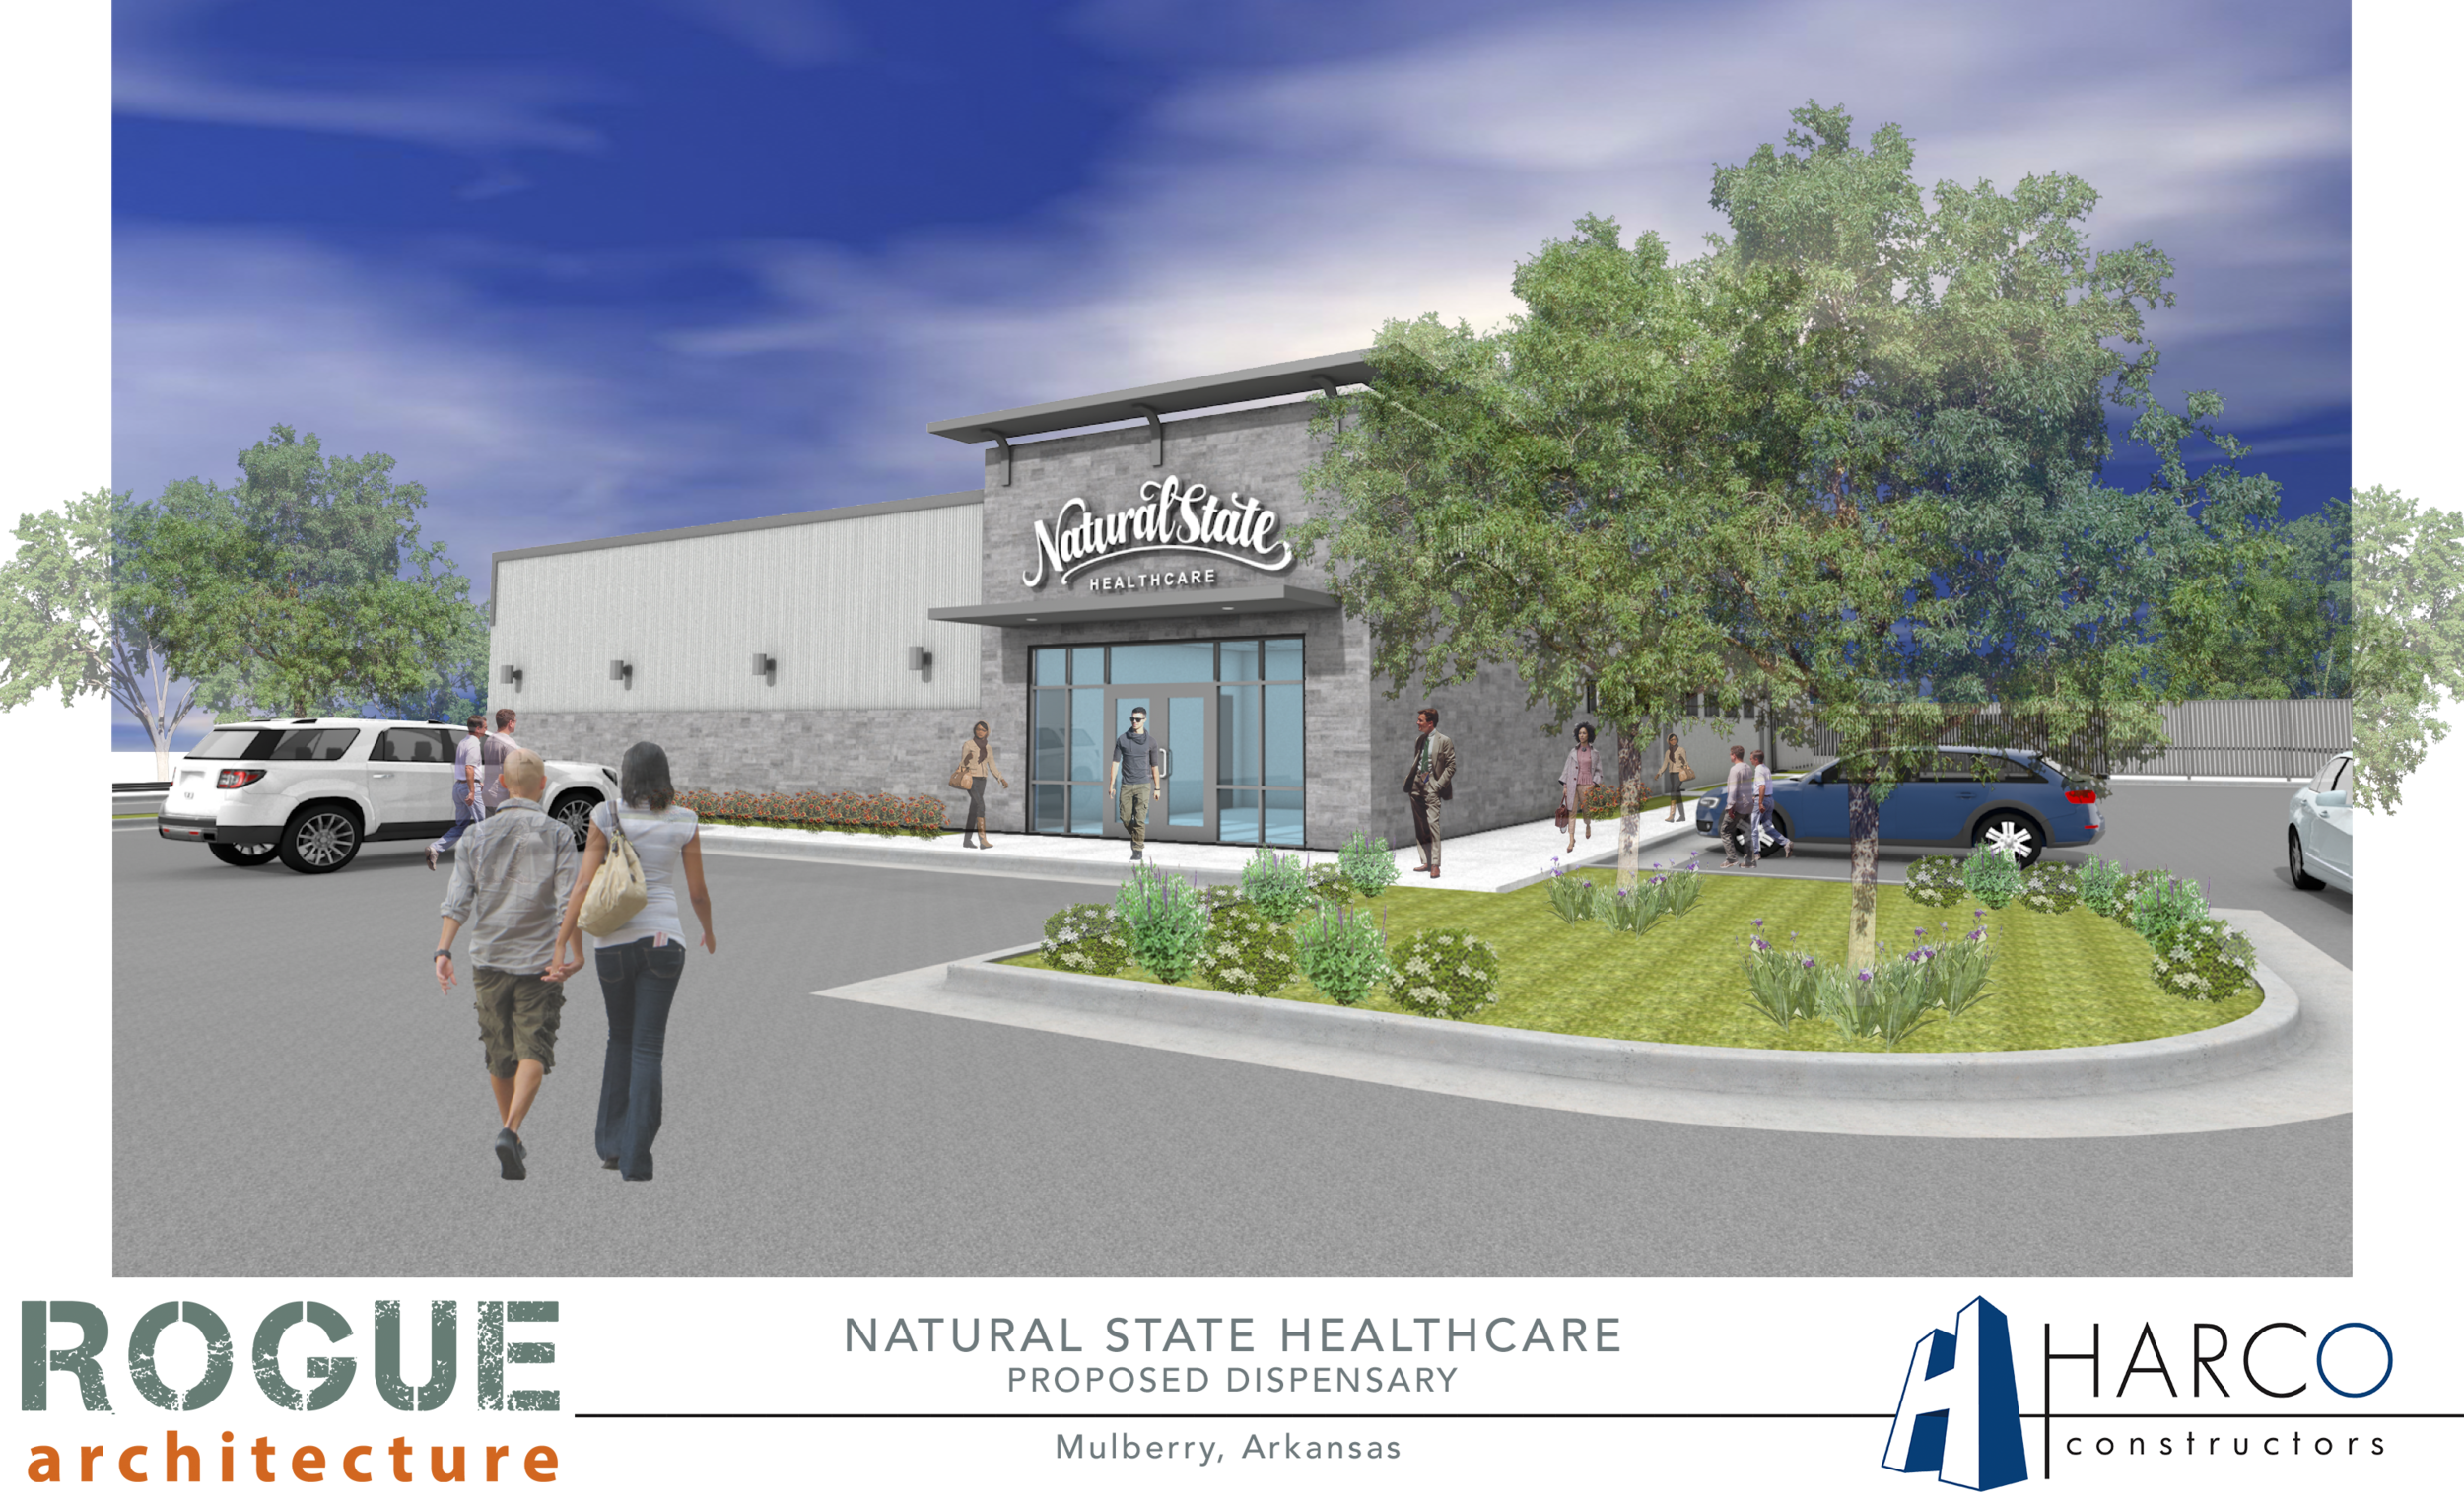 Natural State Healthcare - Proposed new medical cannabis dispensary facility near Fort Smith, Arkansas. Construction to begin mid 2018.